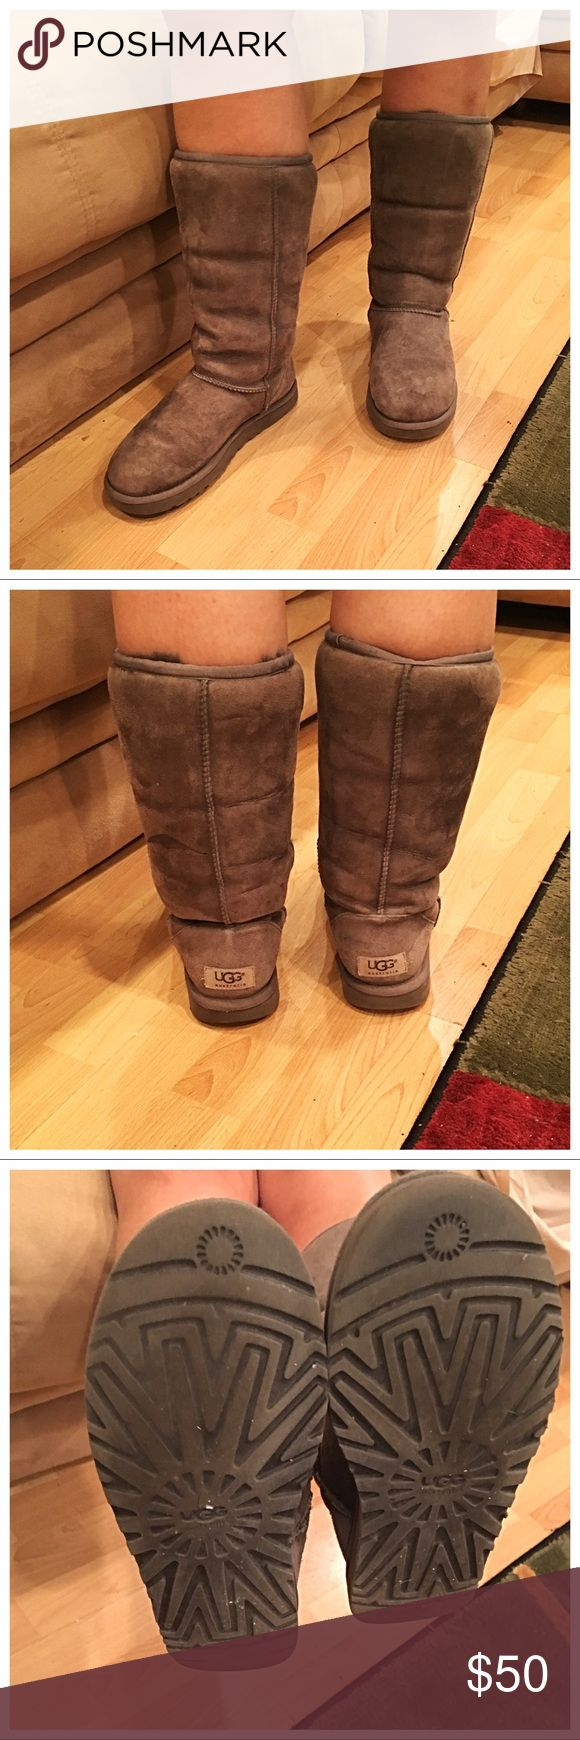 Tall Grey Uggs Preloved but good condition! Size W7. UGG Shoes Winter & Rain Boots